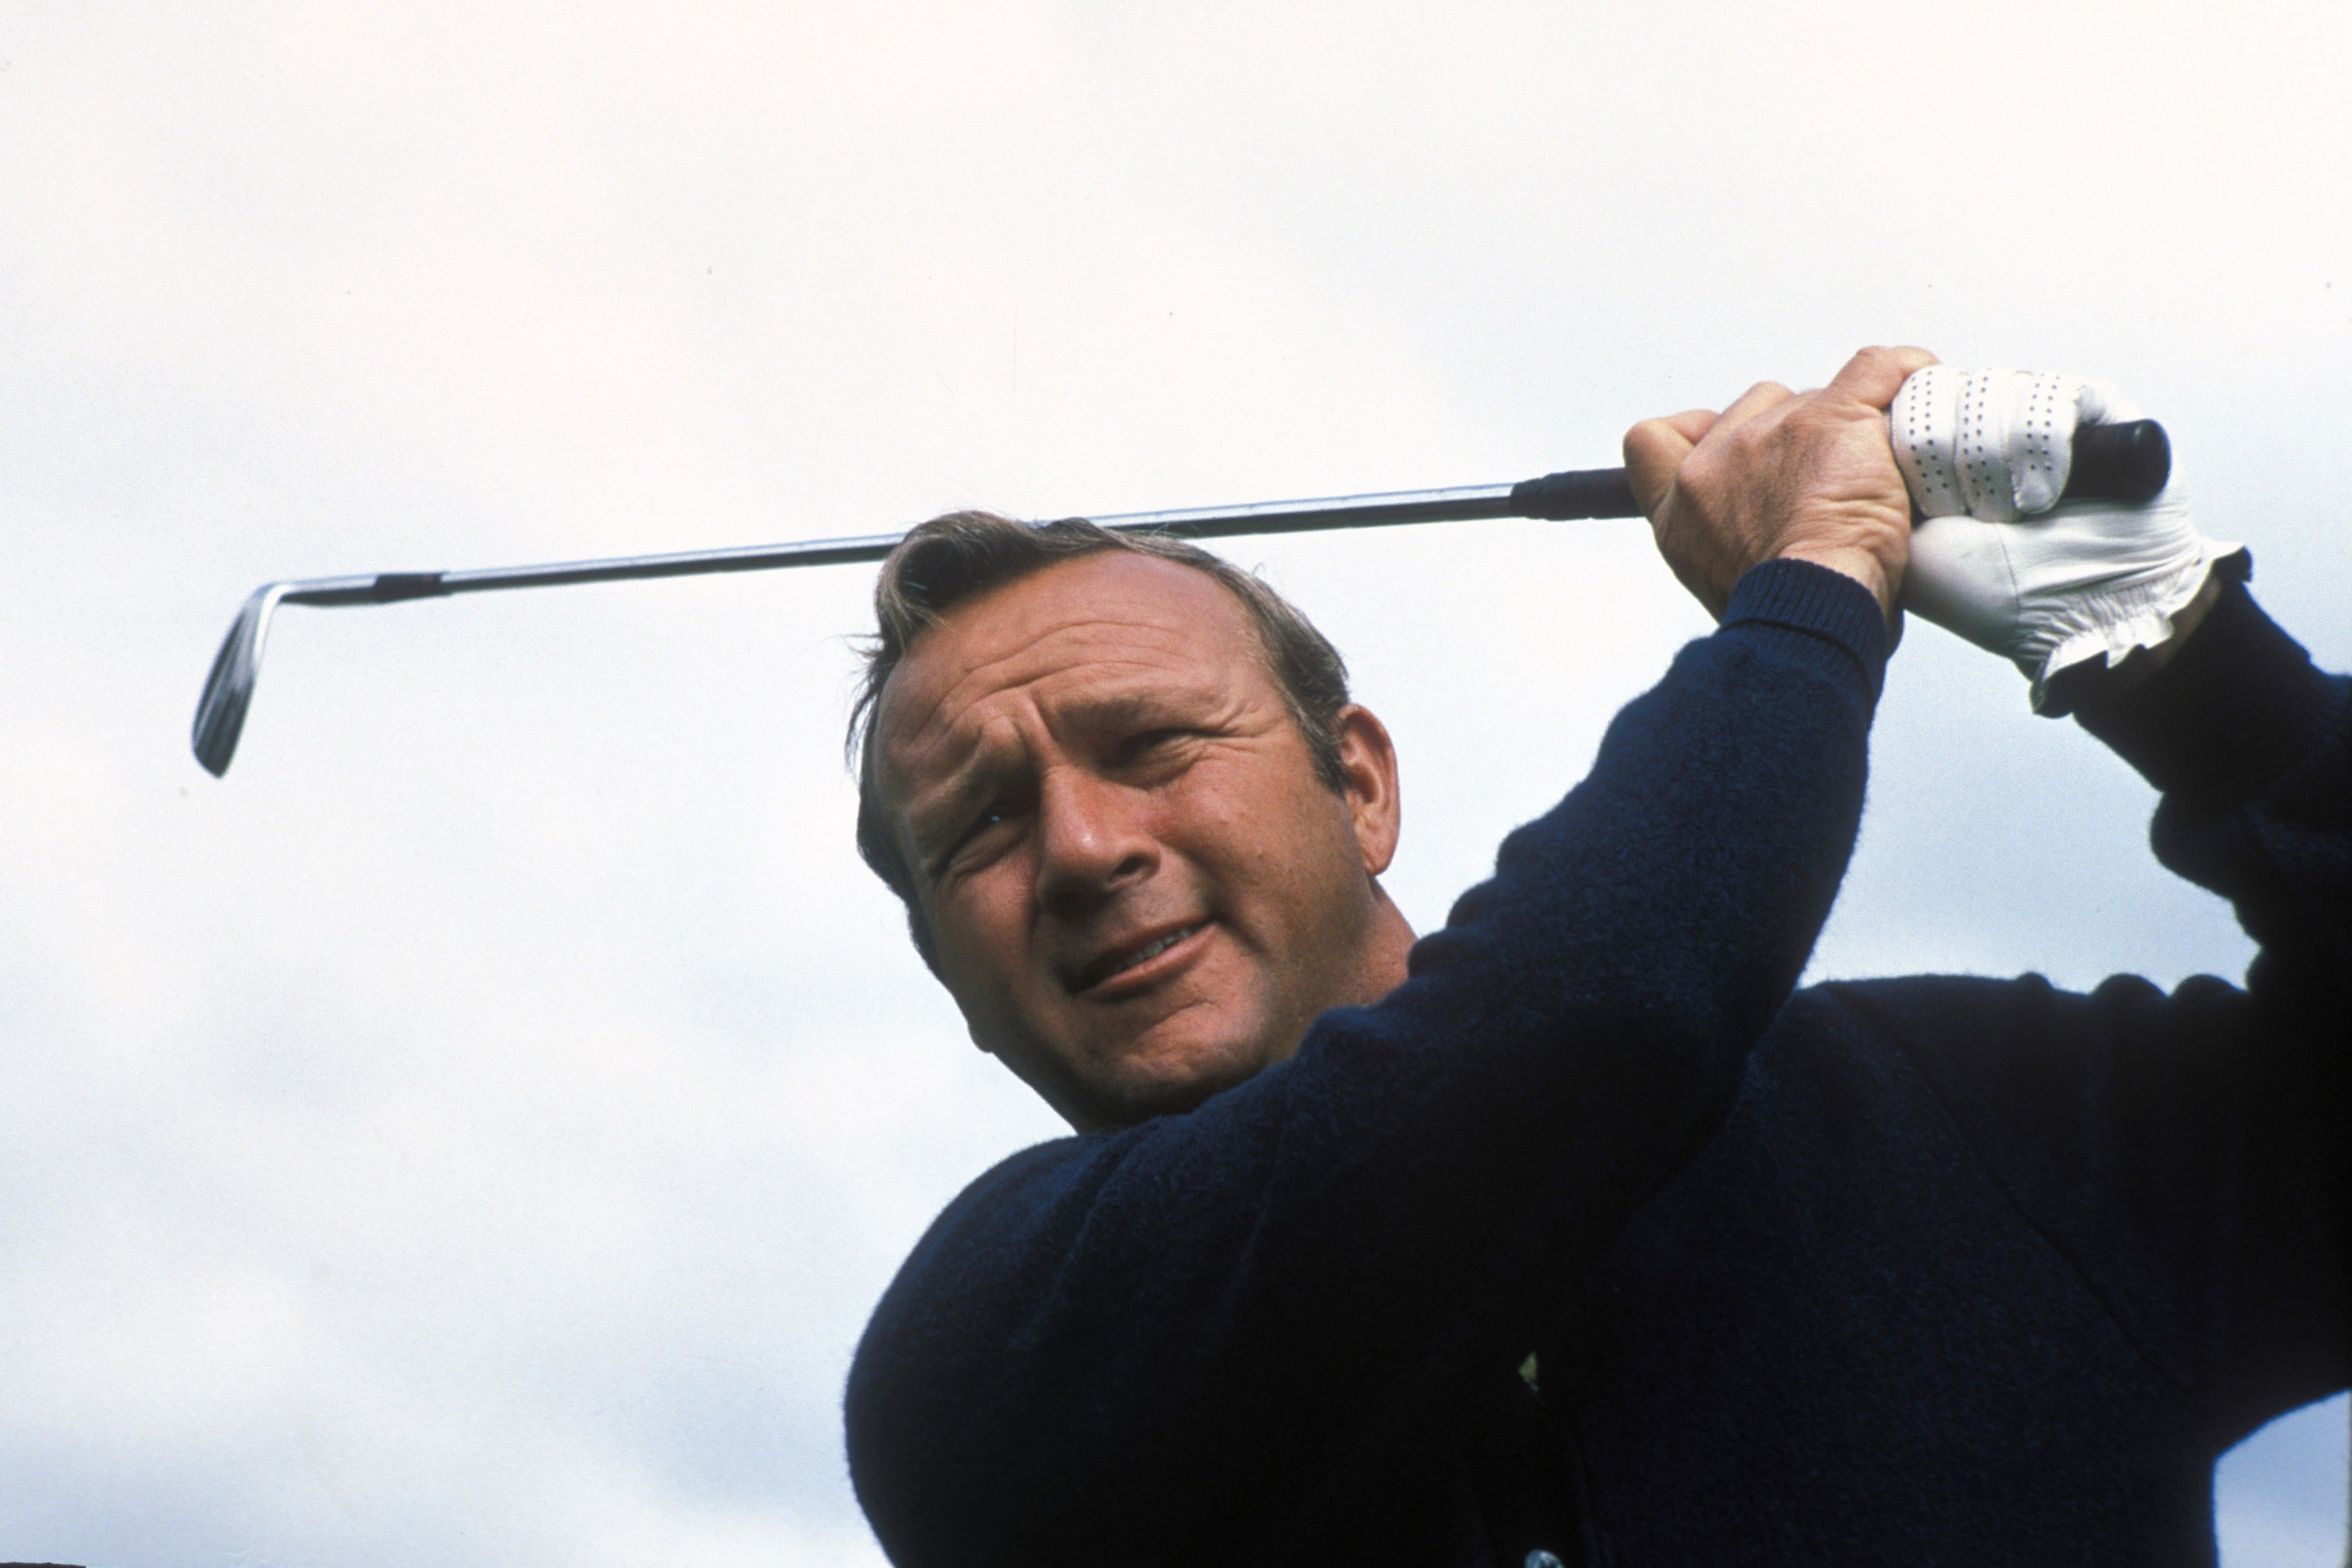 3. 1962: Arnie is unstoppable